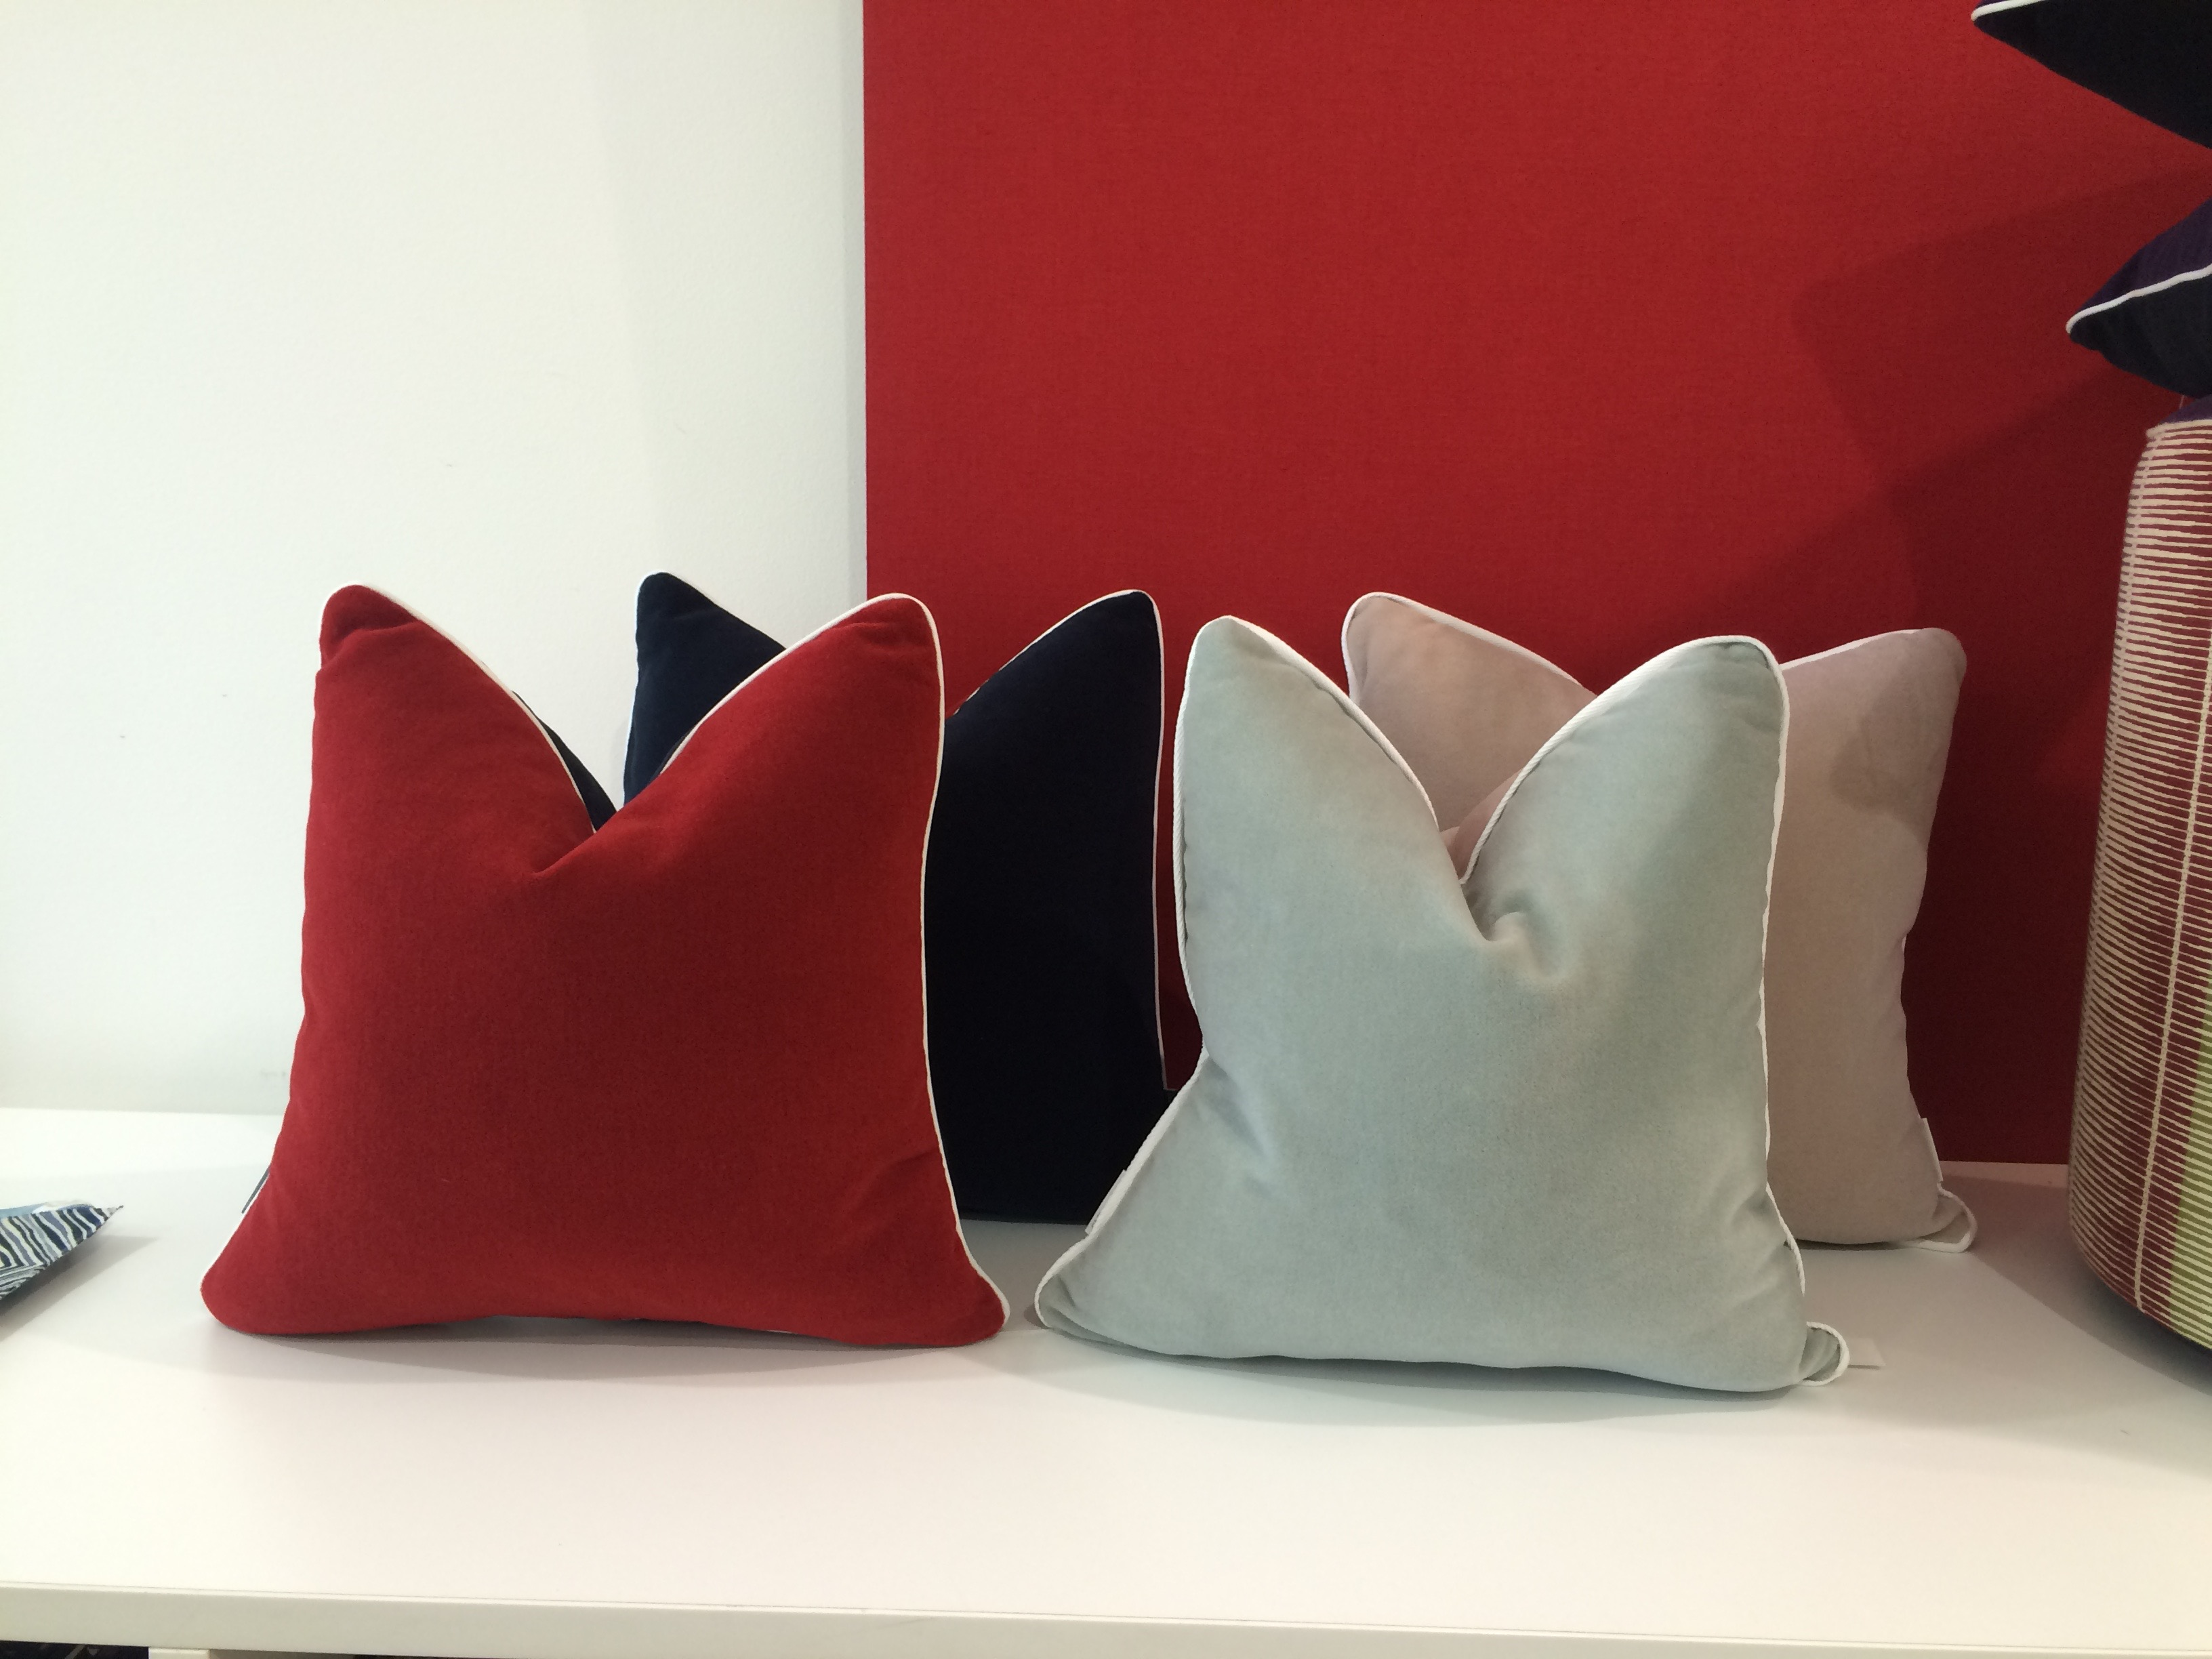 Dominique Kieffer Cushions